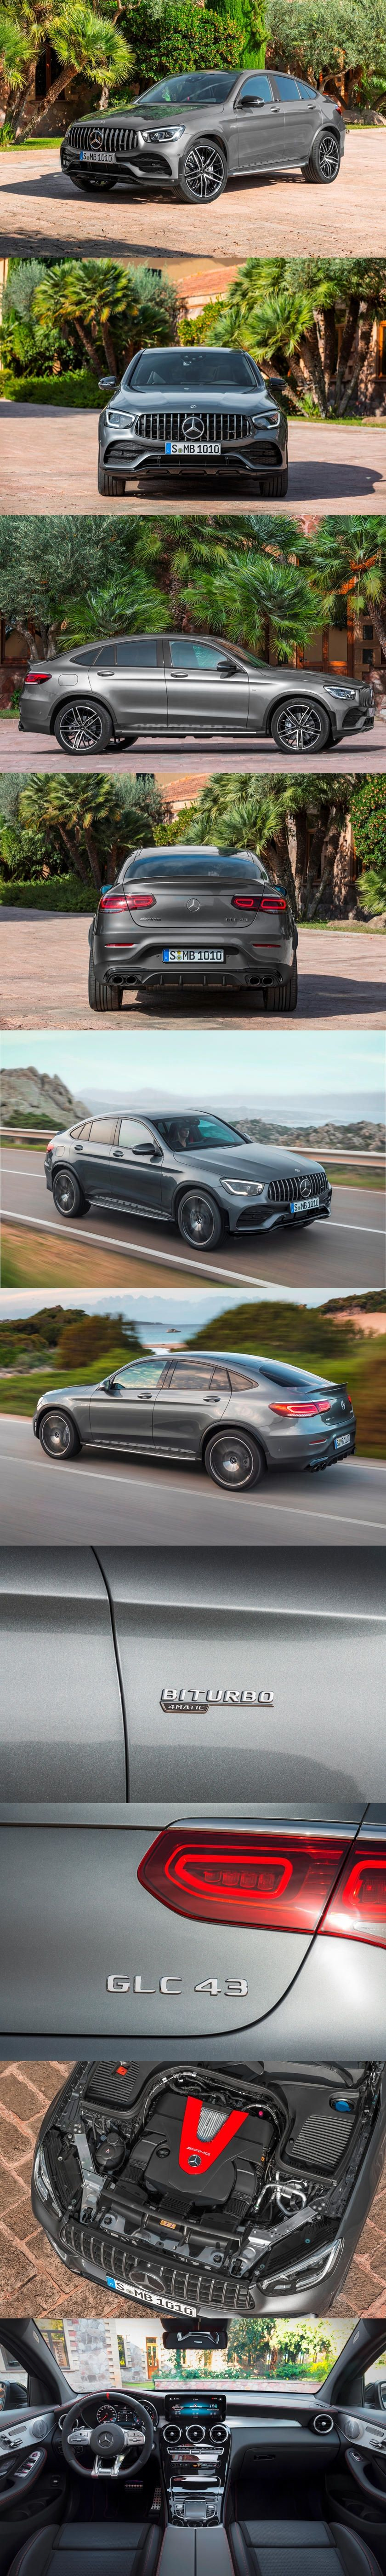 Introducing The 2020 Mercedes Amg Glc 43 Suv And Coupe With